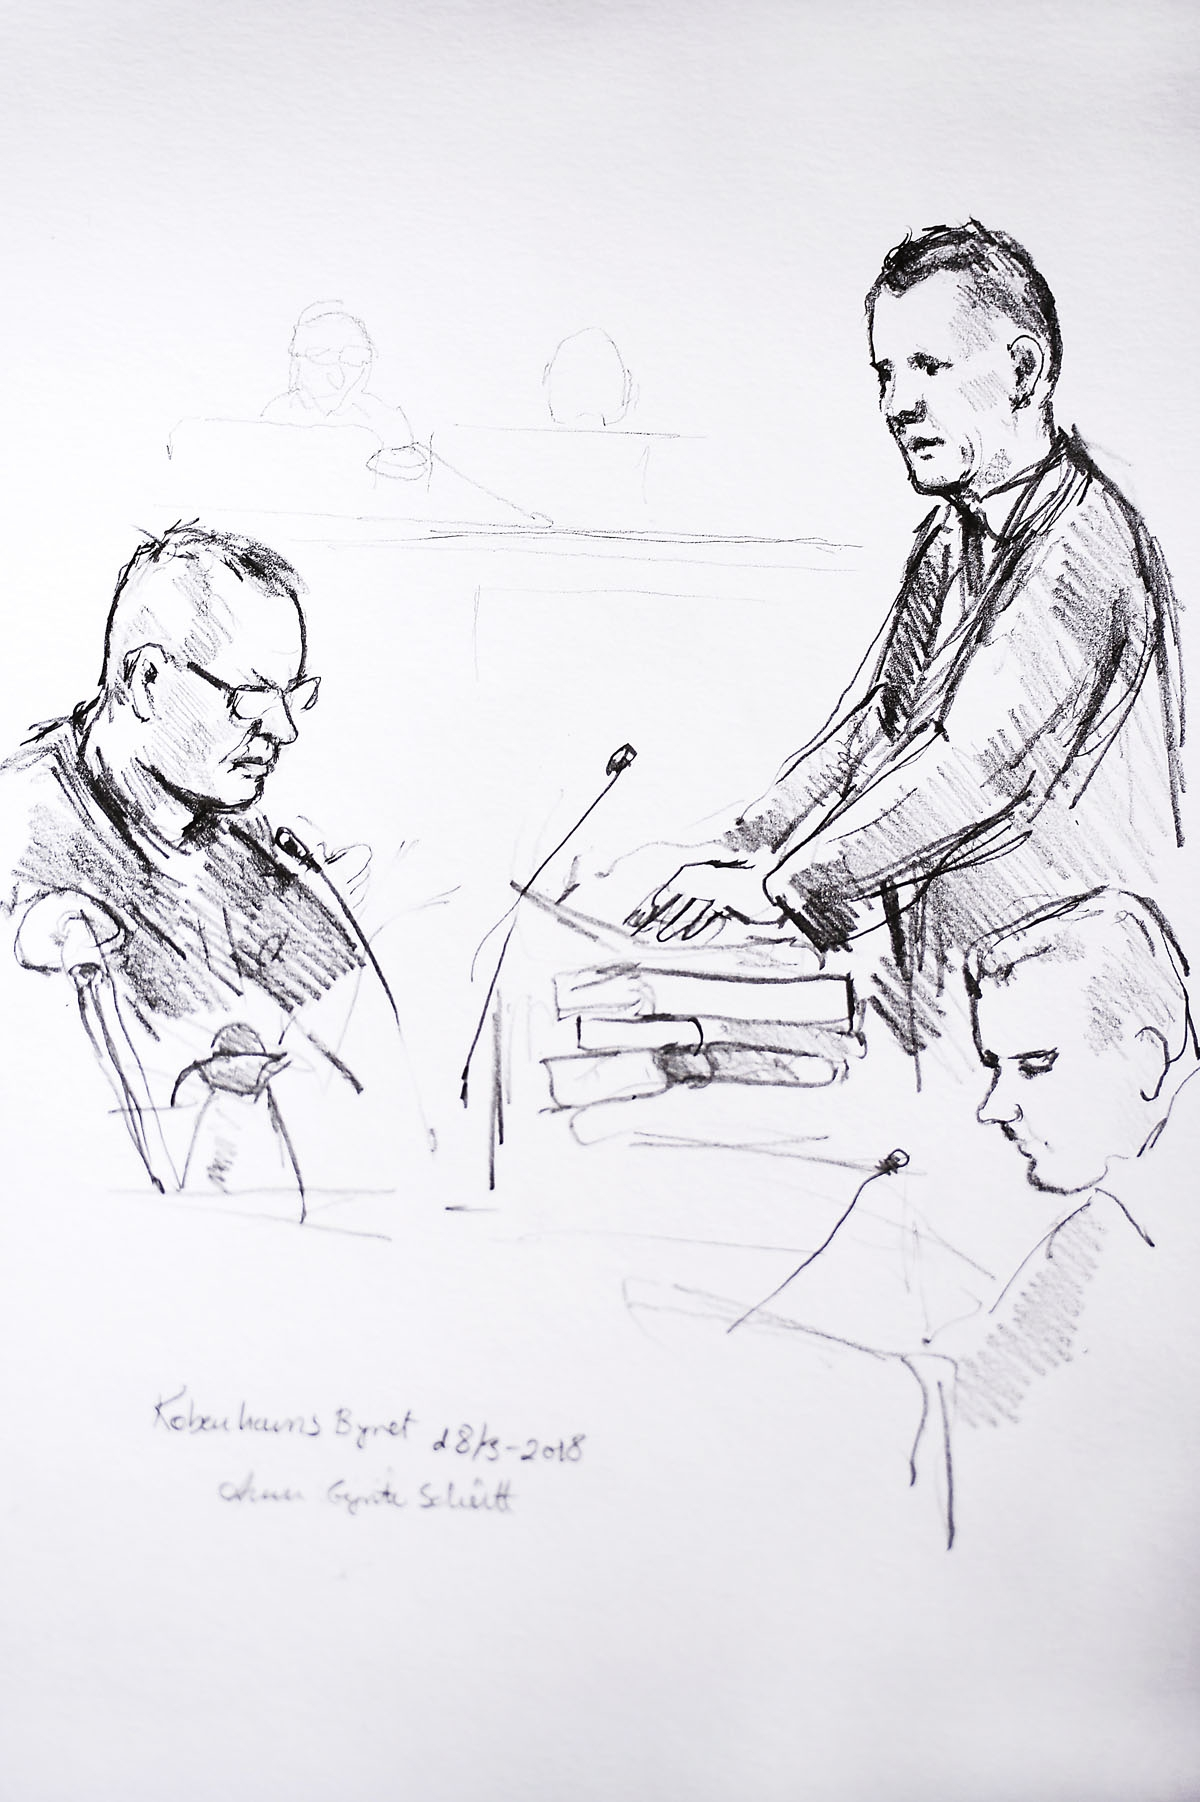 Court drawing by Anne Gyrite Schuett made available by Danish news agency Ritzau SCANPIX shows accused Peter Madsen (L) and the prosecutor Jakob Buch-Jepsen (standing) on the first day of the trial at the courthouse in Copenhagen, Denmark, where the trial